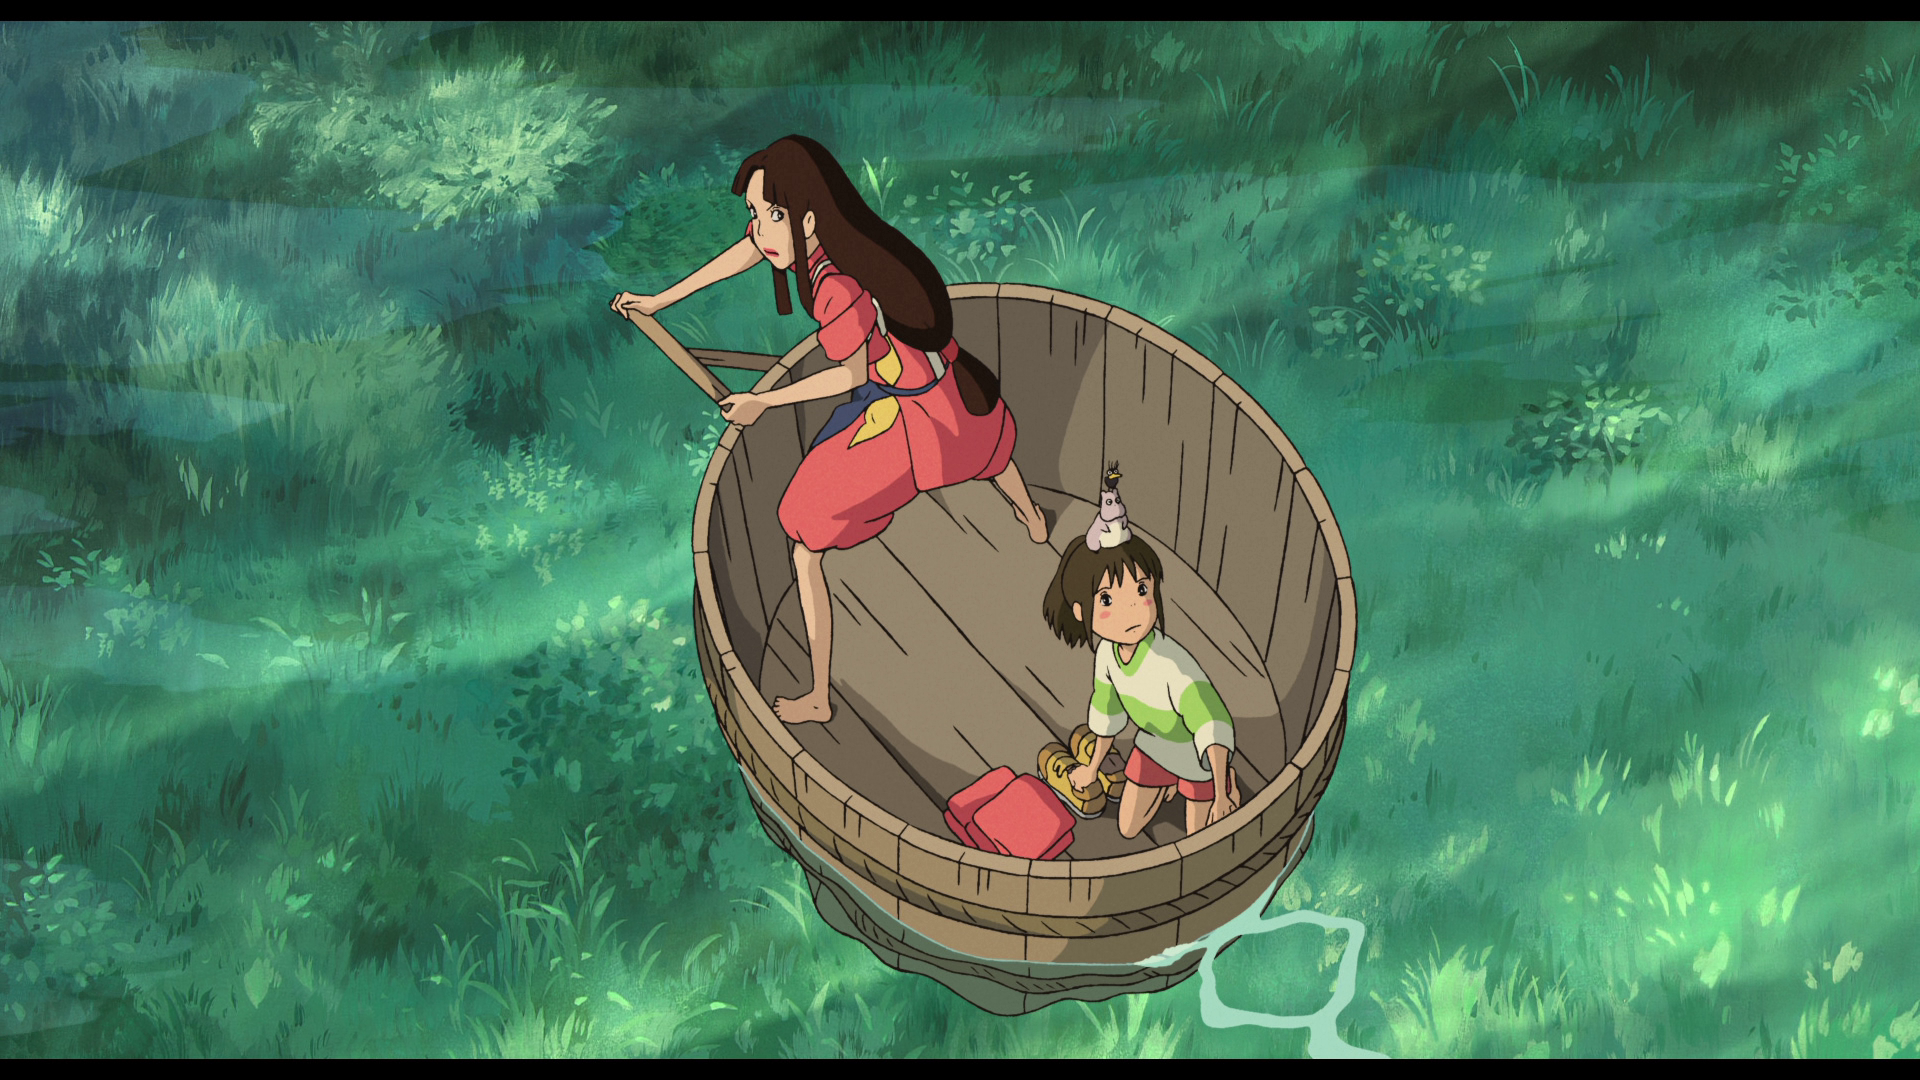 Pin by Vikka W on Reference Spirited Away Studio ghibli